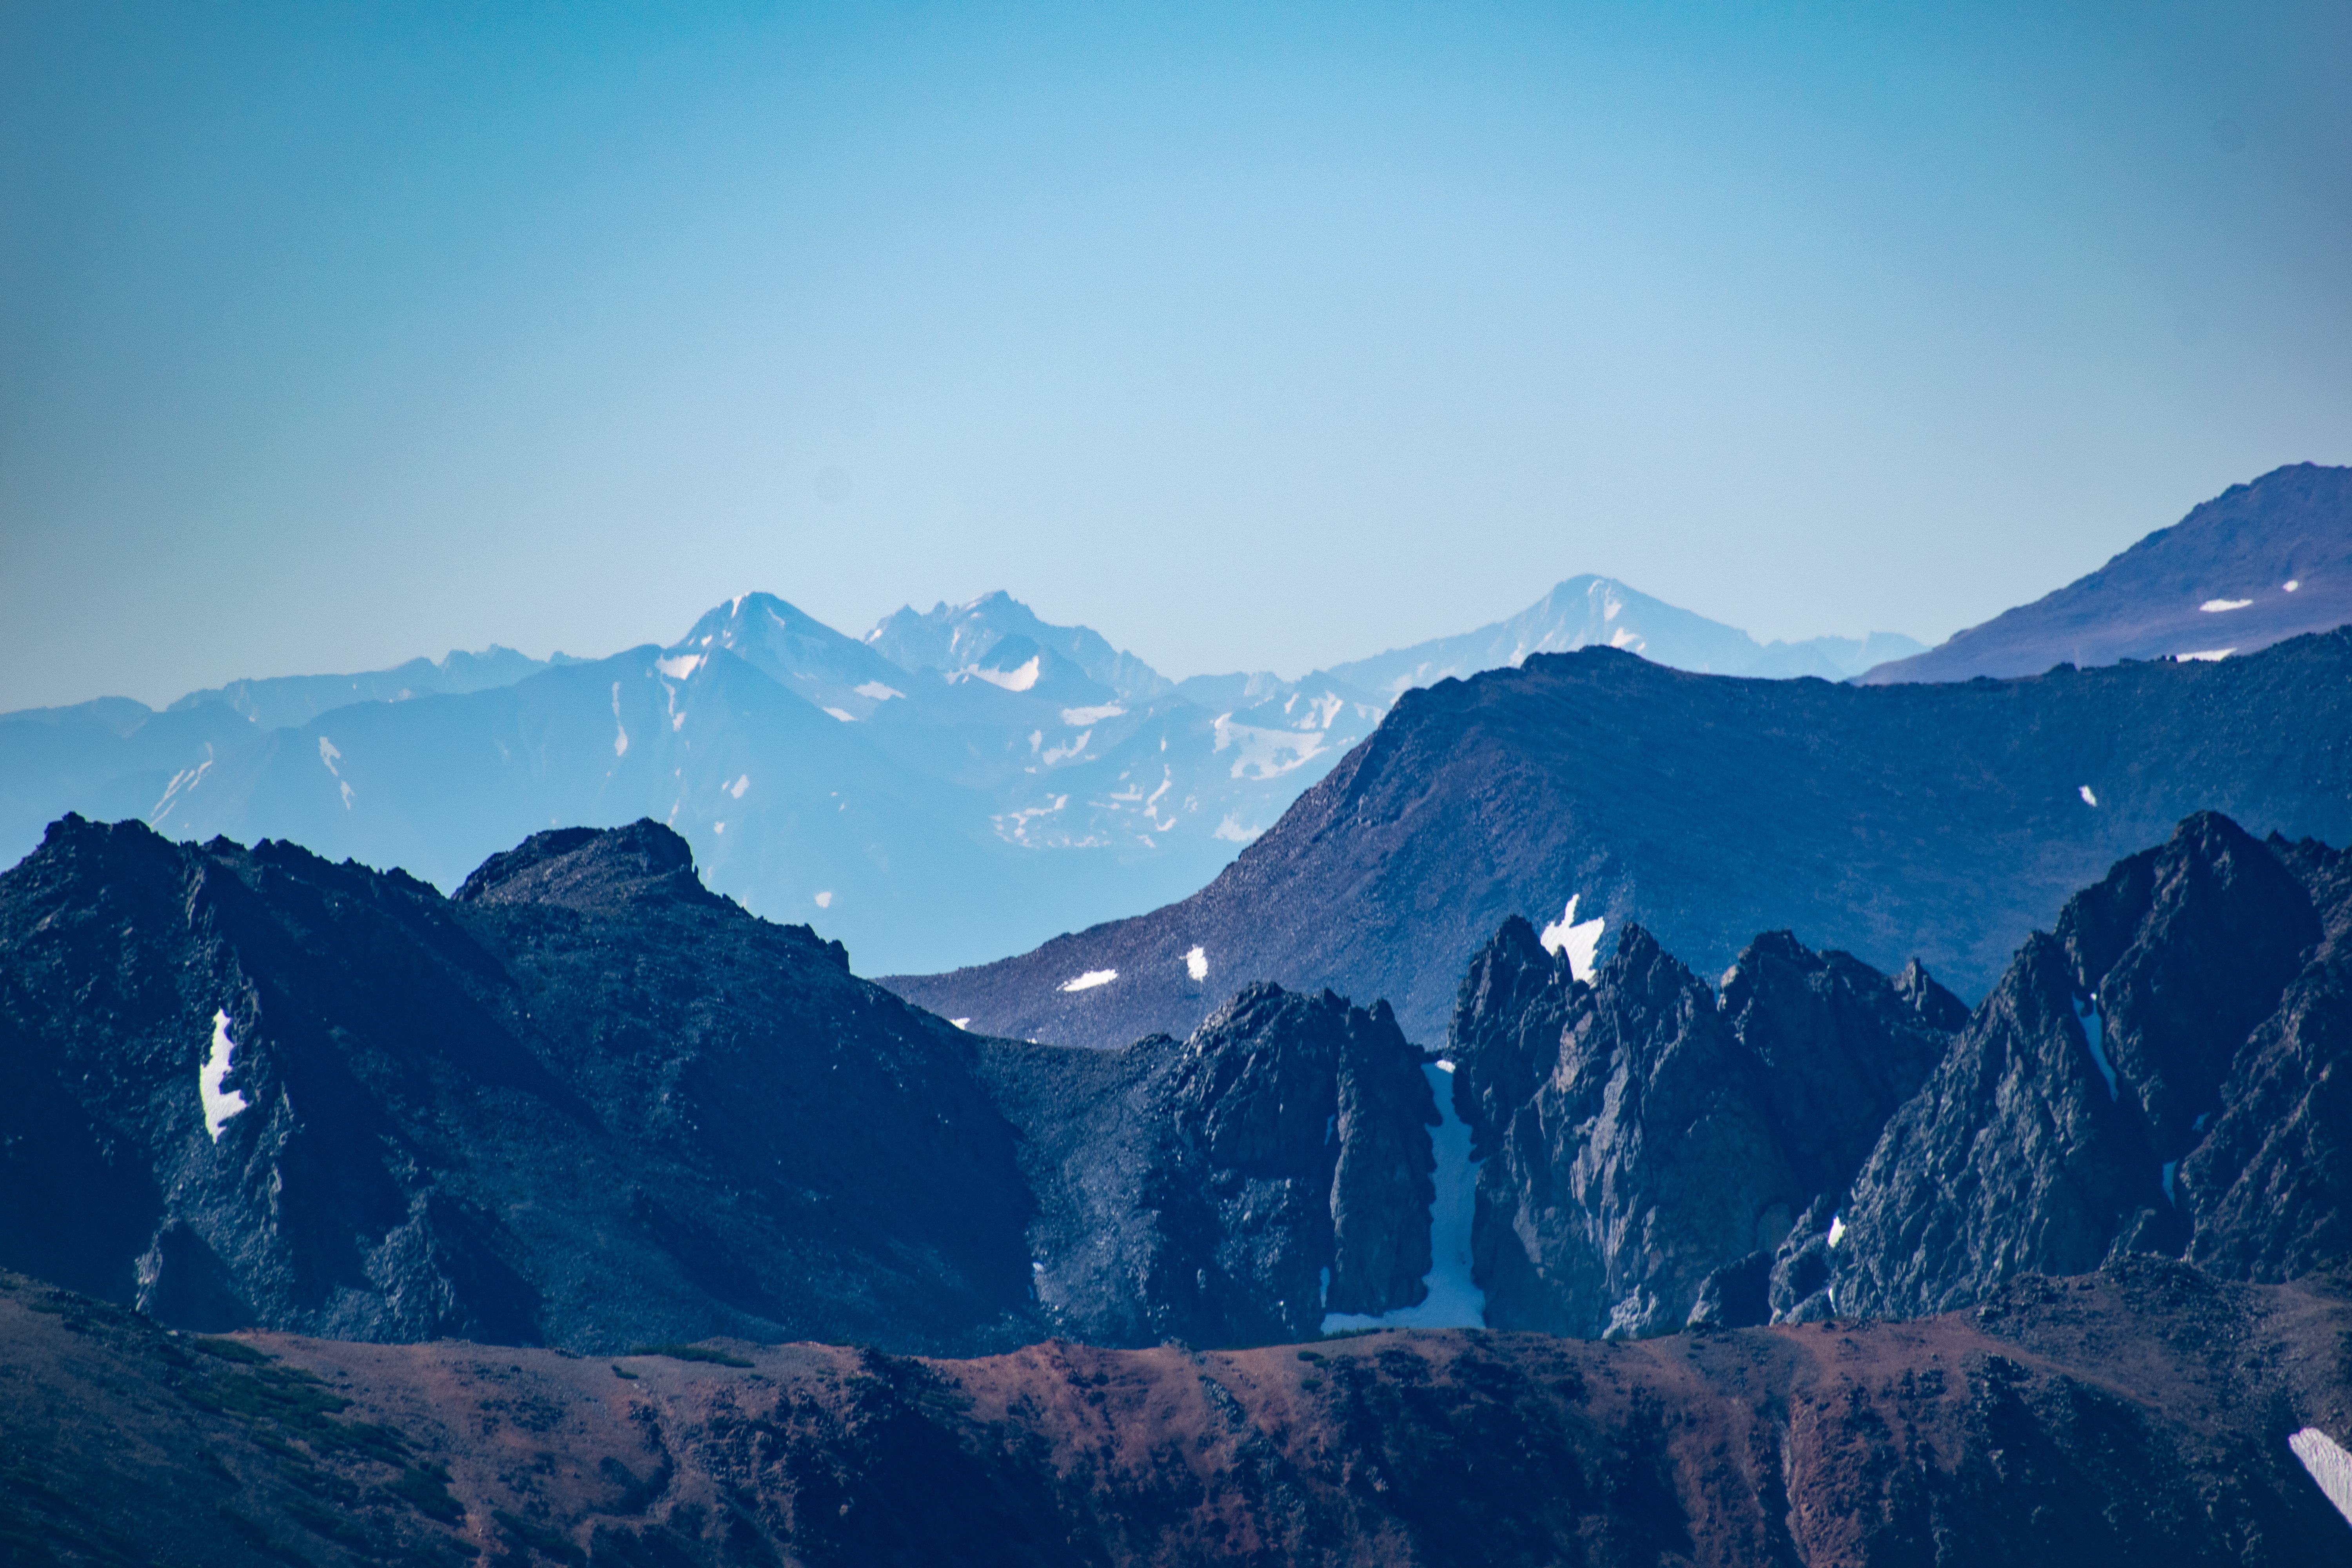 Bloody Mountain, Red Slate Mountain, Bear Creek Spire, Mts Dade, Abbot and Mills, and Mt Gabb.